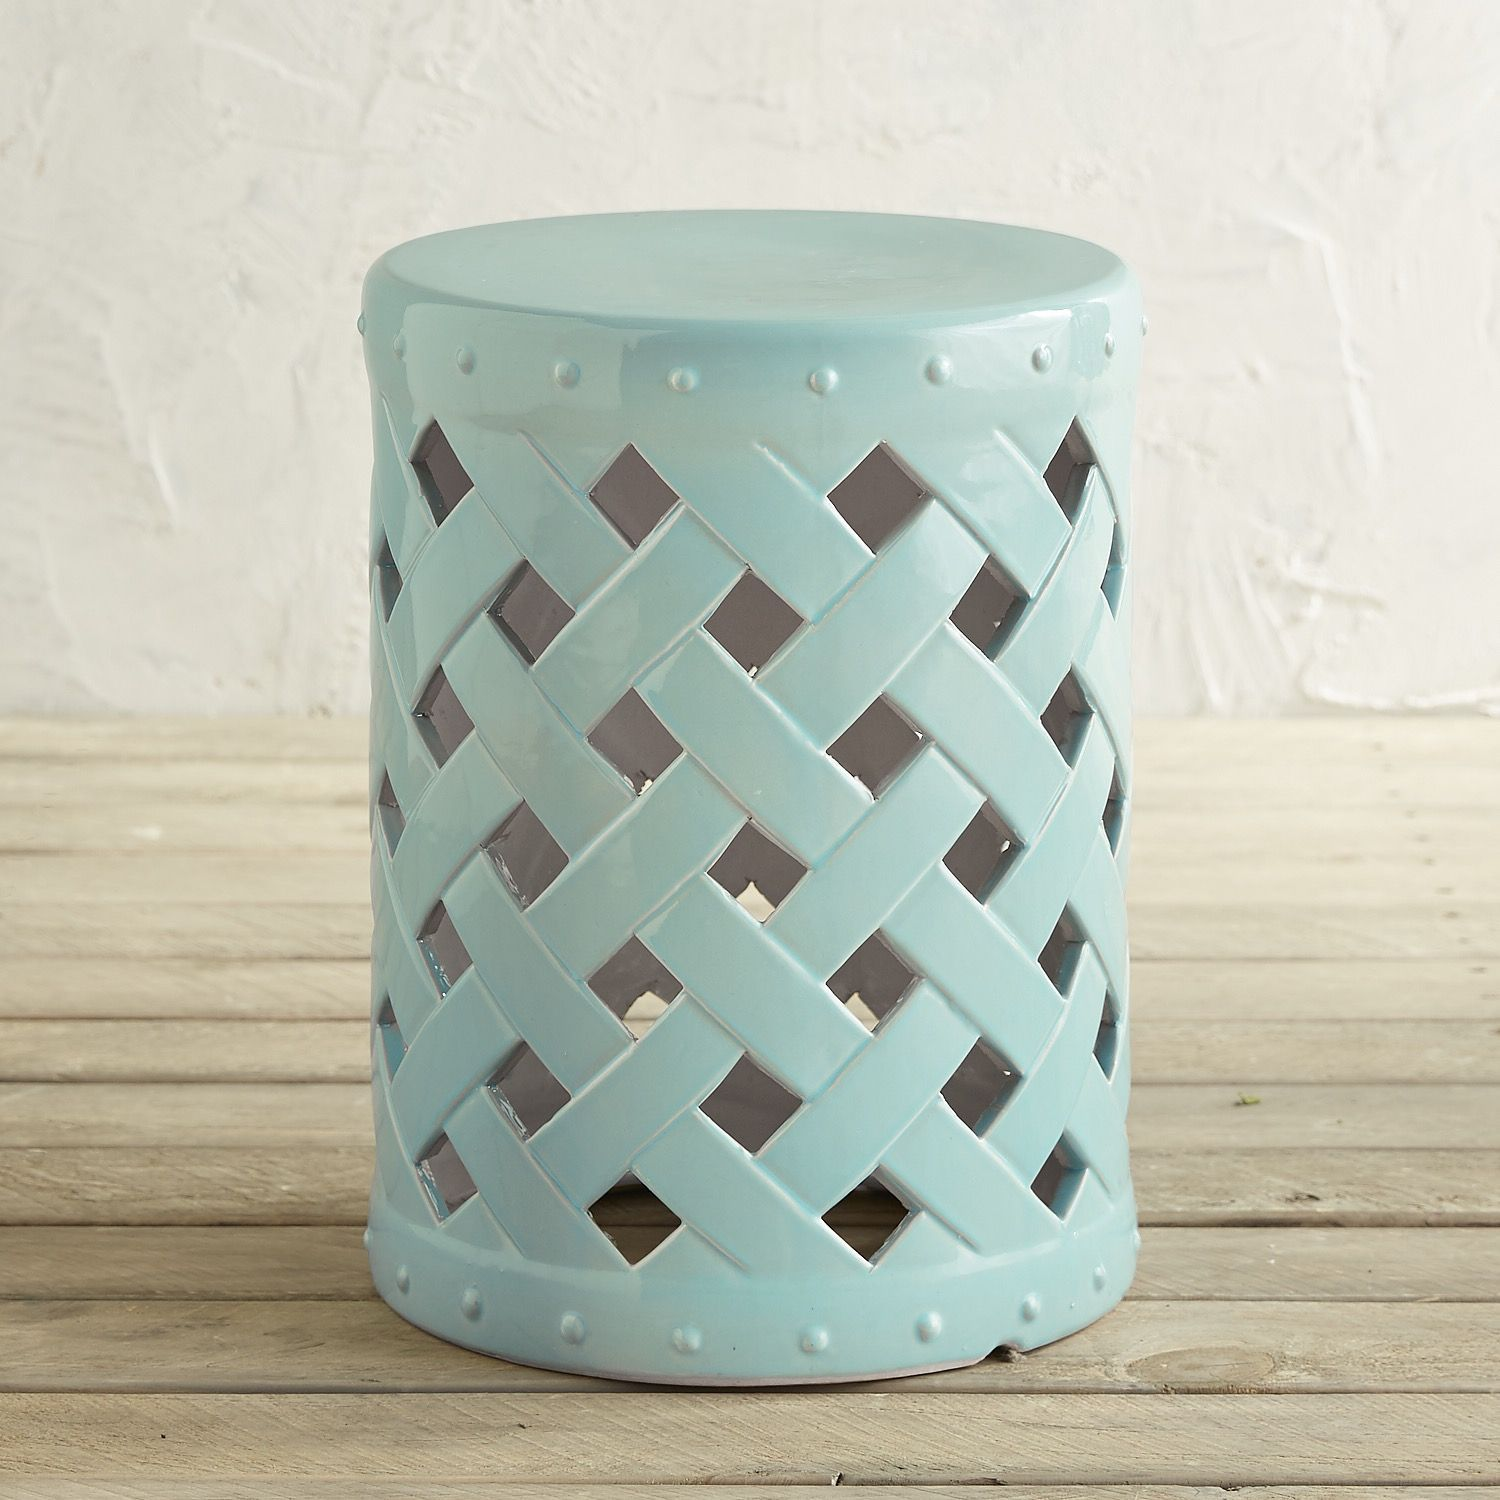 white garden ebay stool outdoor small itm ceramic stools asian and blue